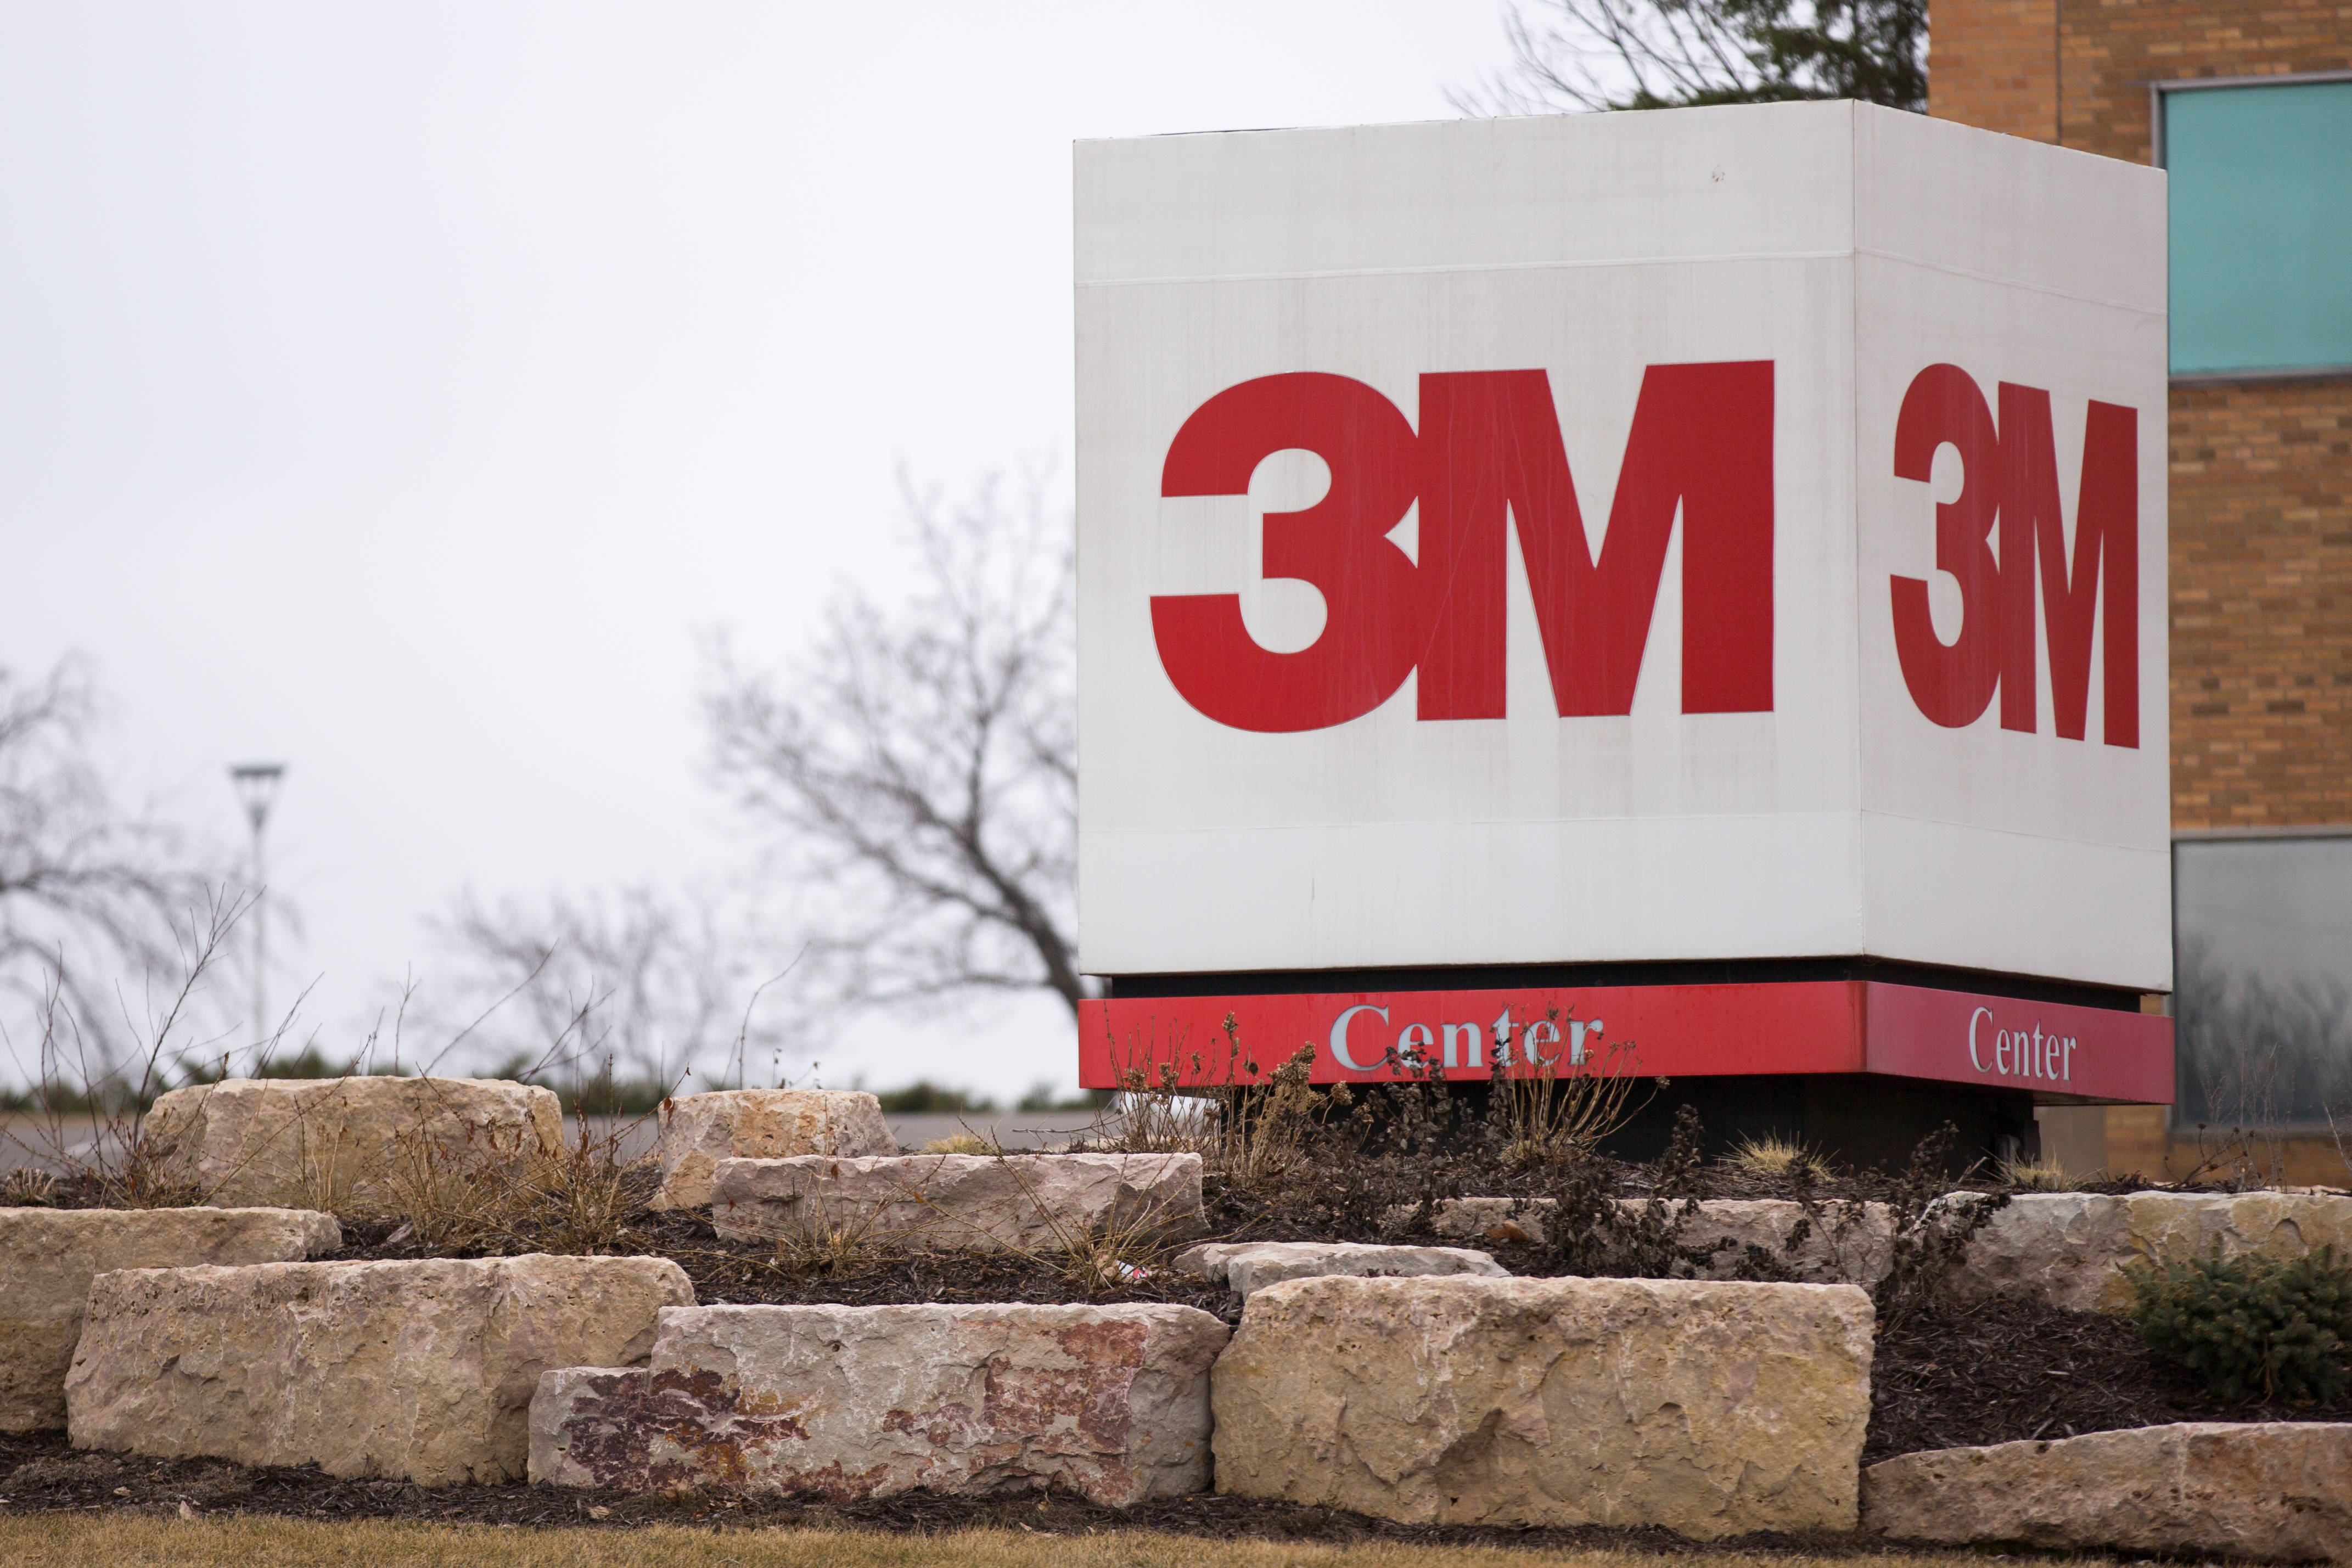 3M Co. Headquarters As They Restructure, Aim For International Growth